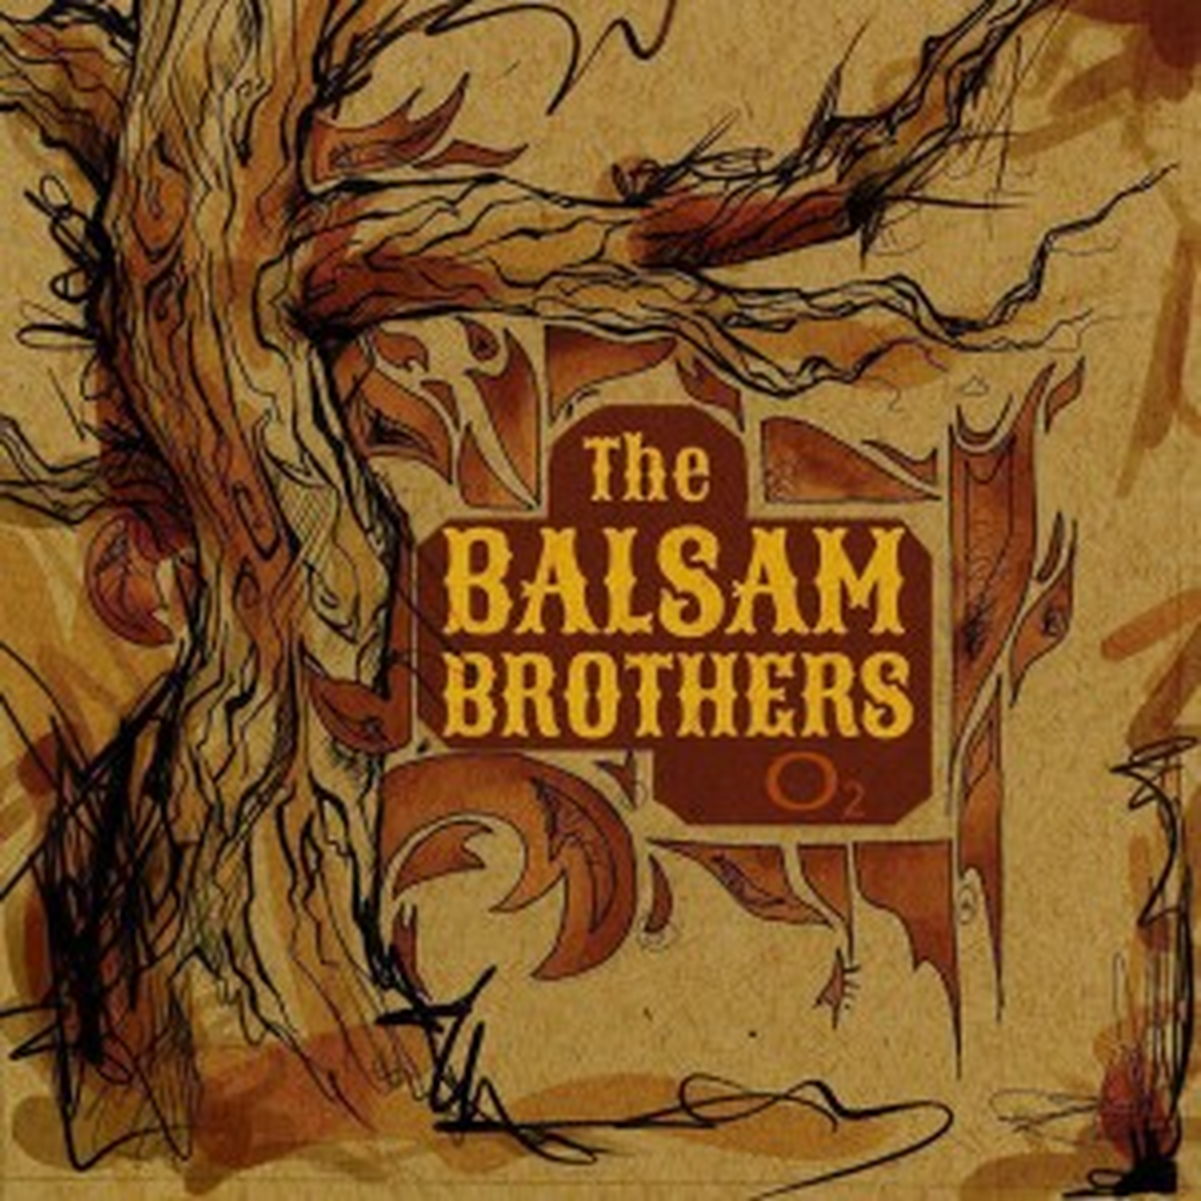 TheBalsamBrothers